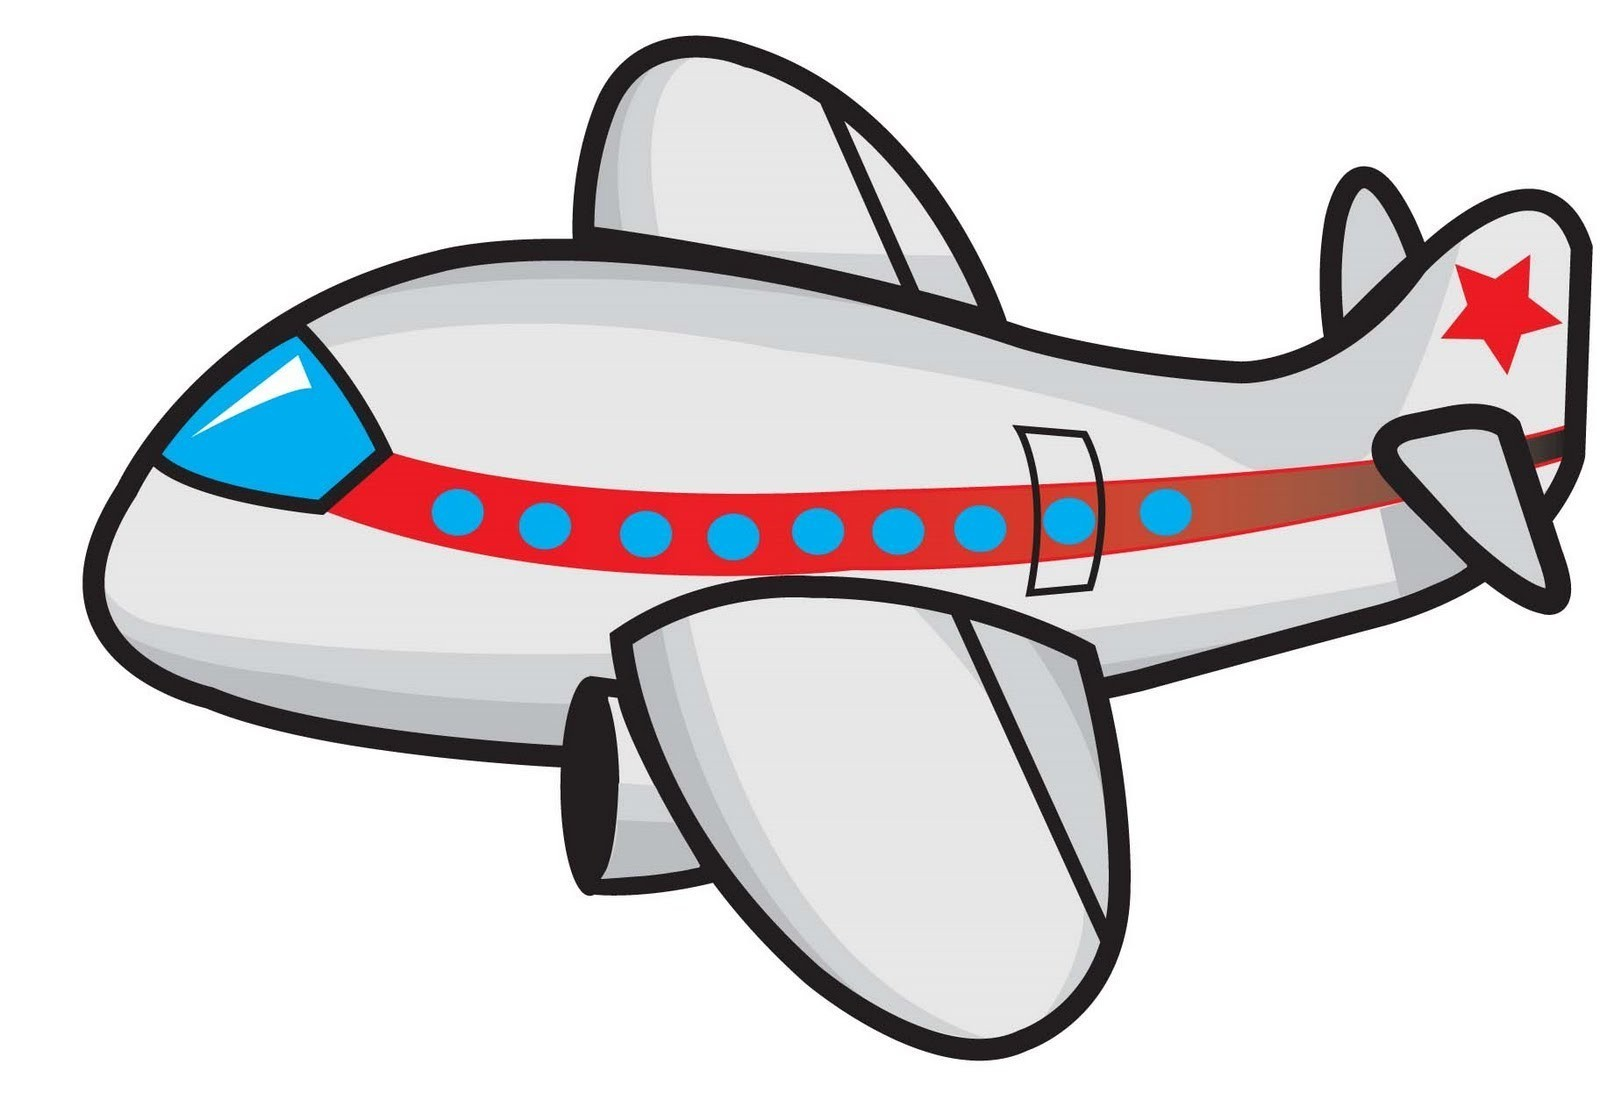 Clipart aeroplane pictures clip freeuse library Collection of Aeroplane clipart | Free download best Aeroplane ... clip freeuse library